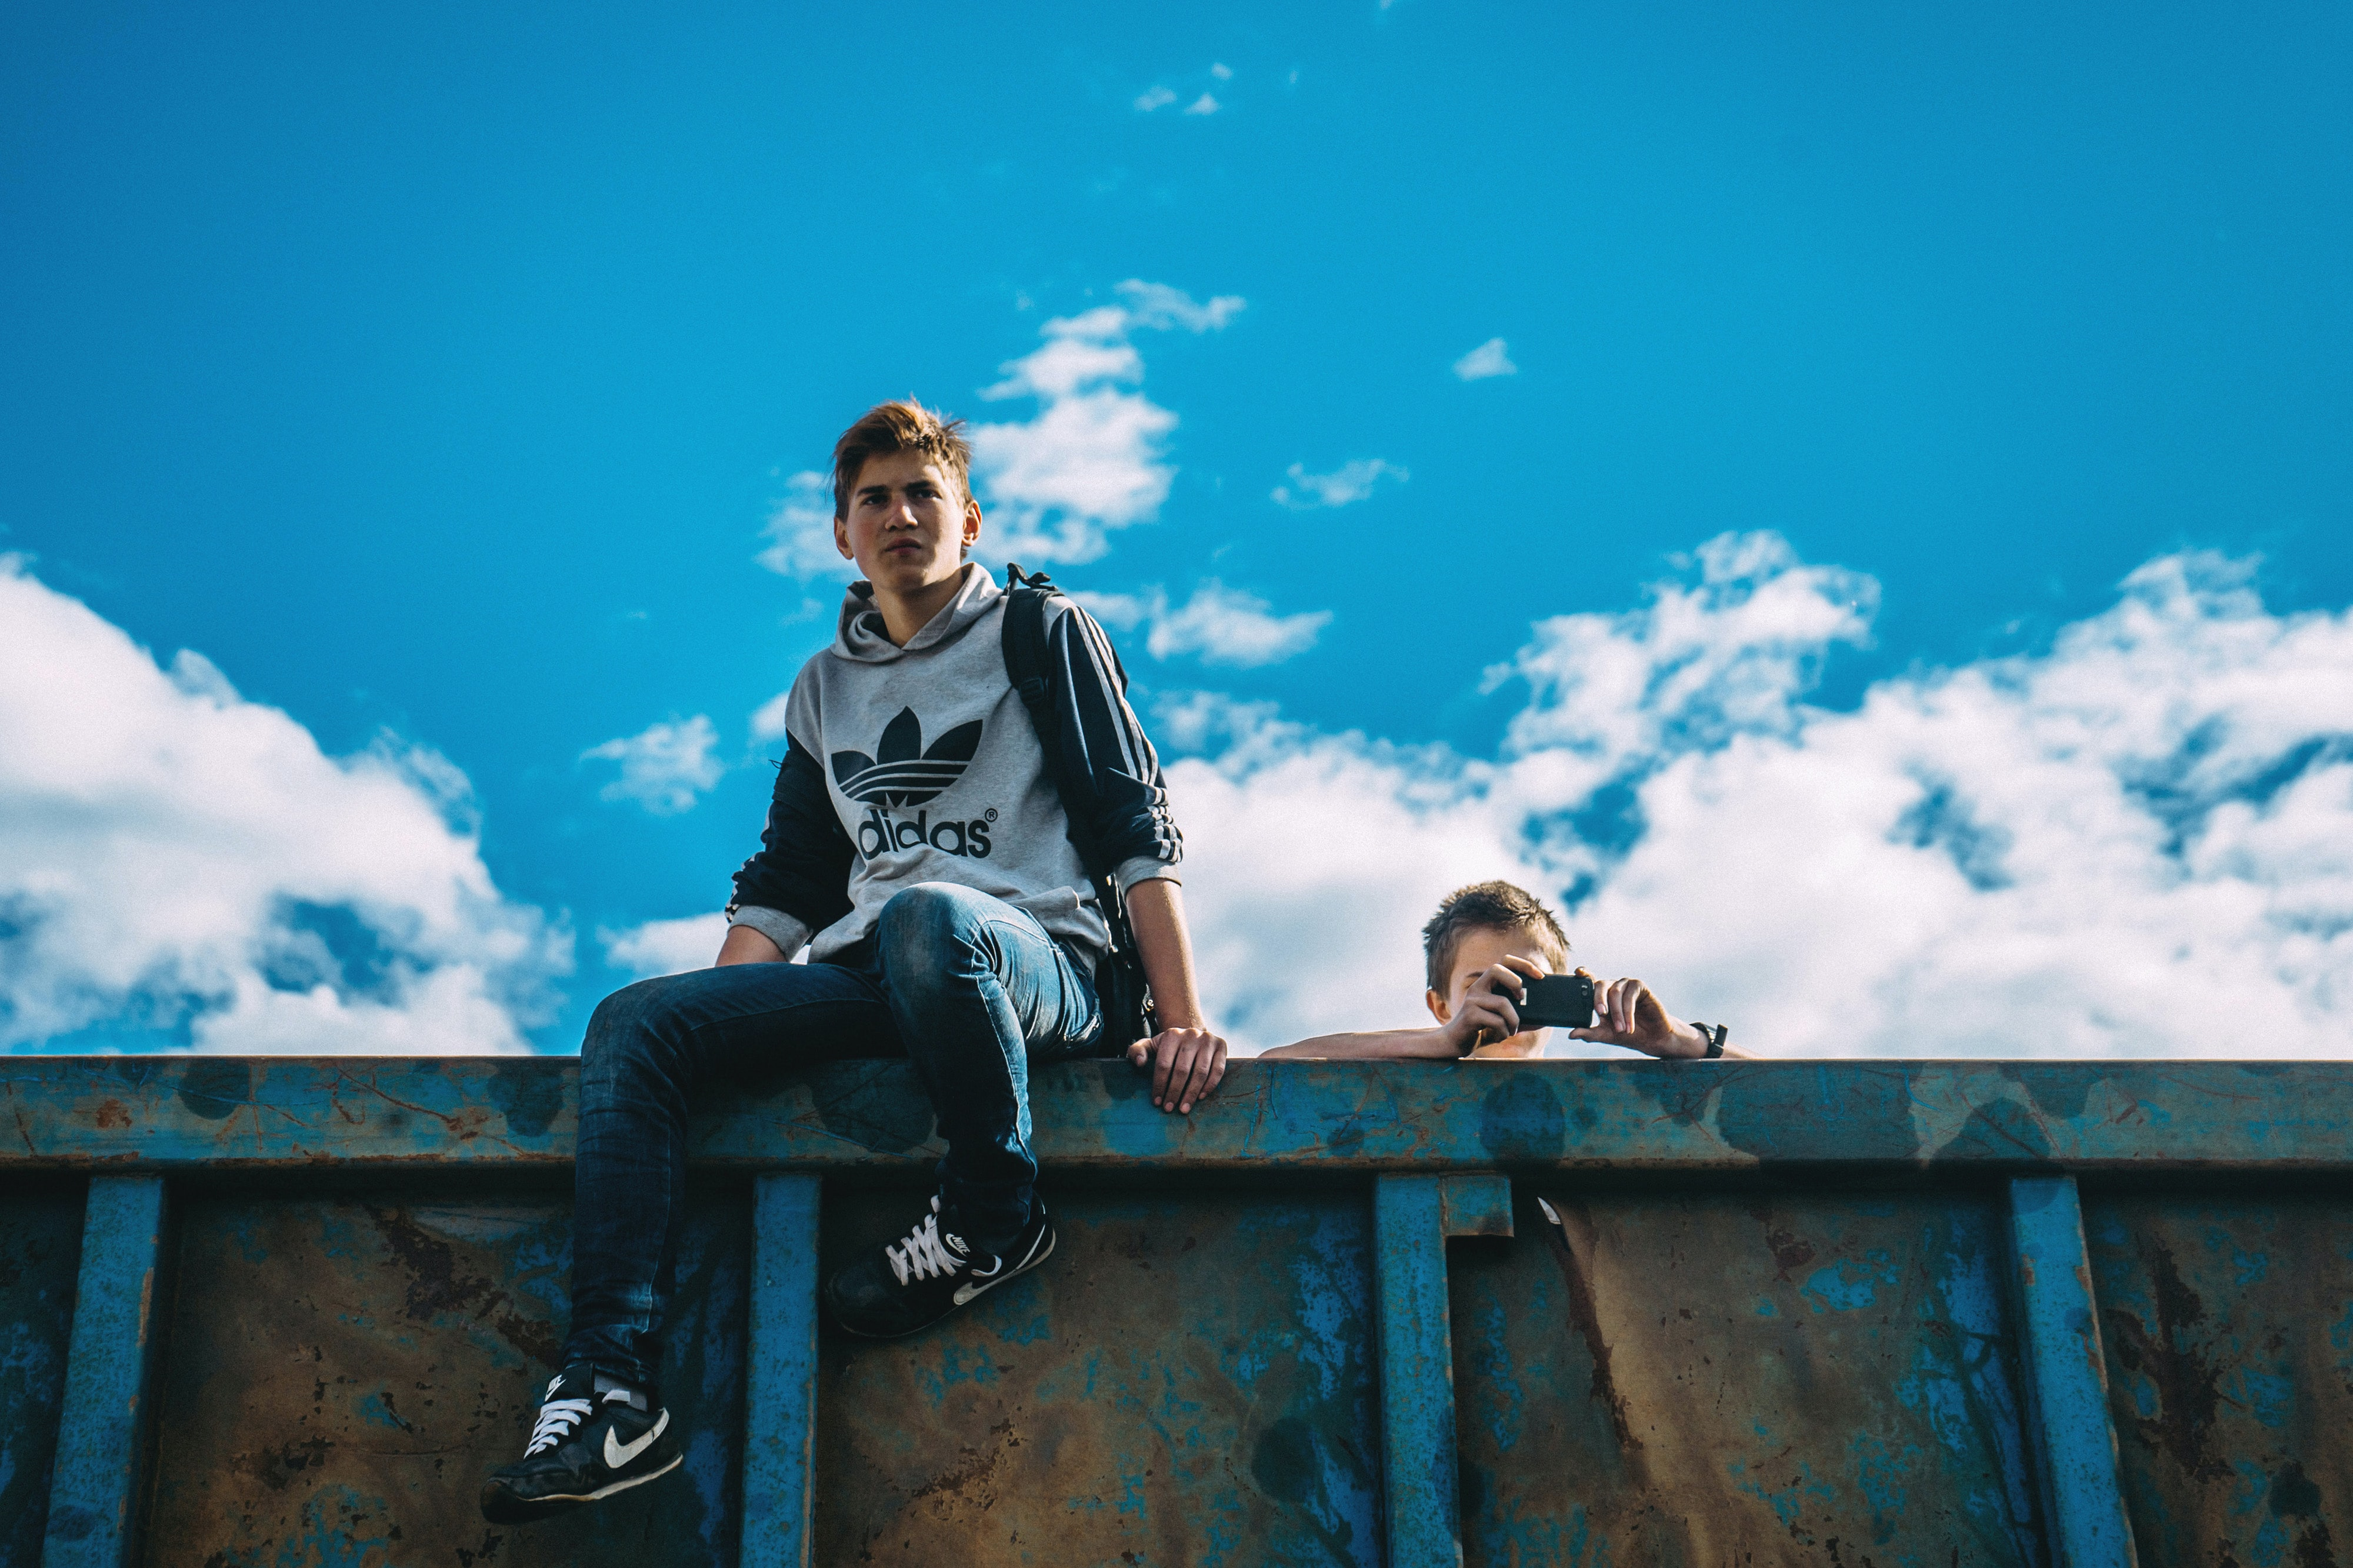 Two men on a rusted wall against a blue sky, one taking photos with an iPhone